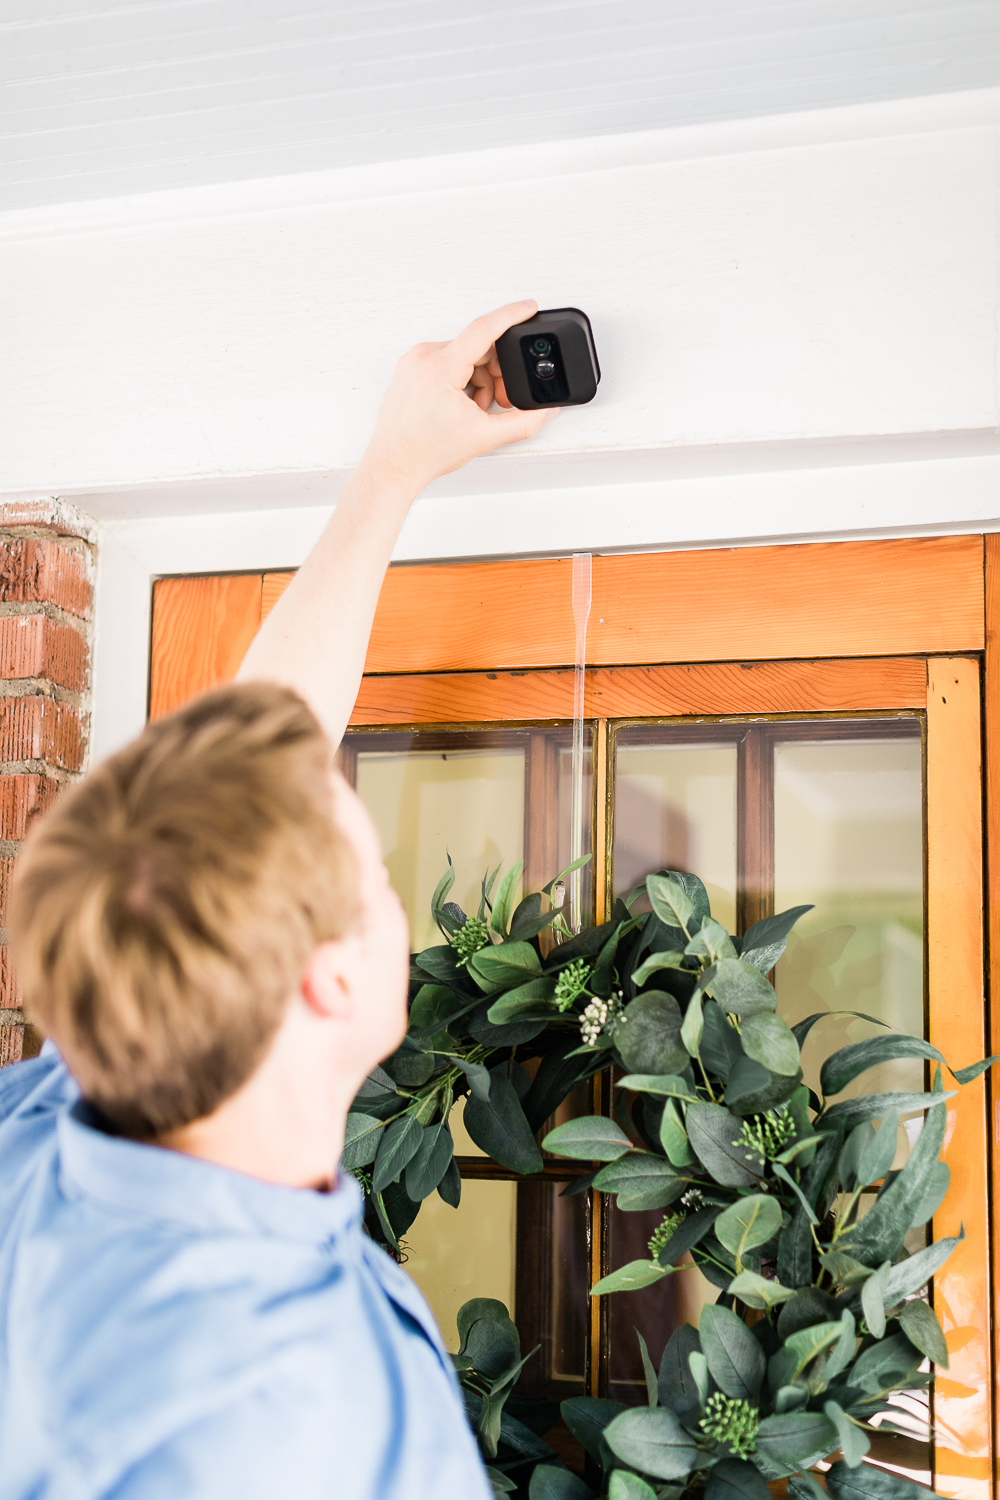 Blink XT Review: Why We Chose the Blink Home Security System by southern lifestyle blogger Stephanie Ziajka from Diary of a Debutante, blink camera review, blink home security review, best diy home security system